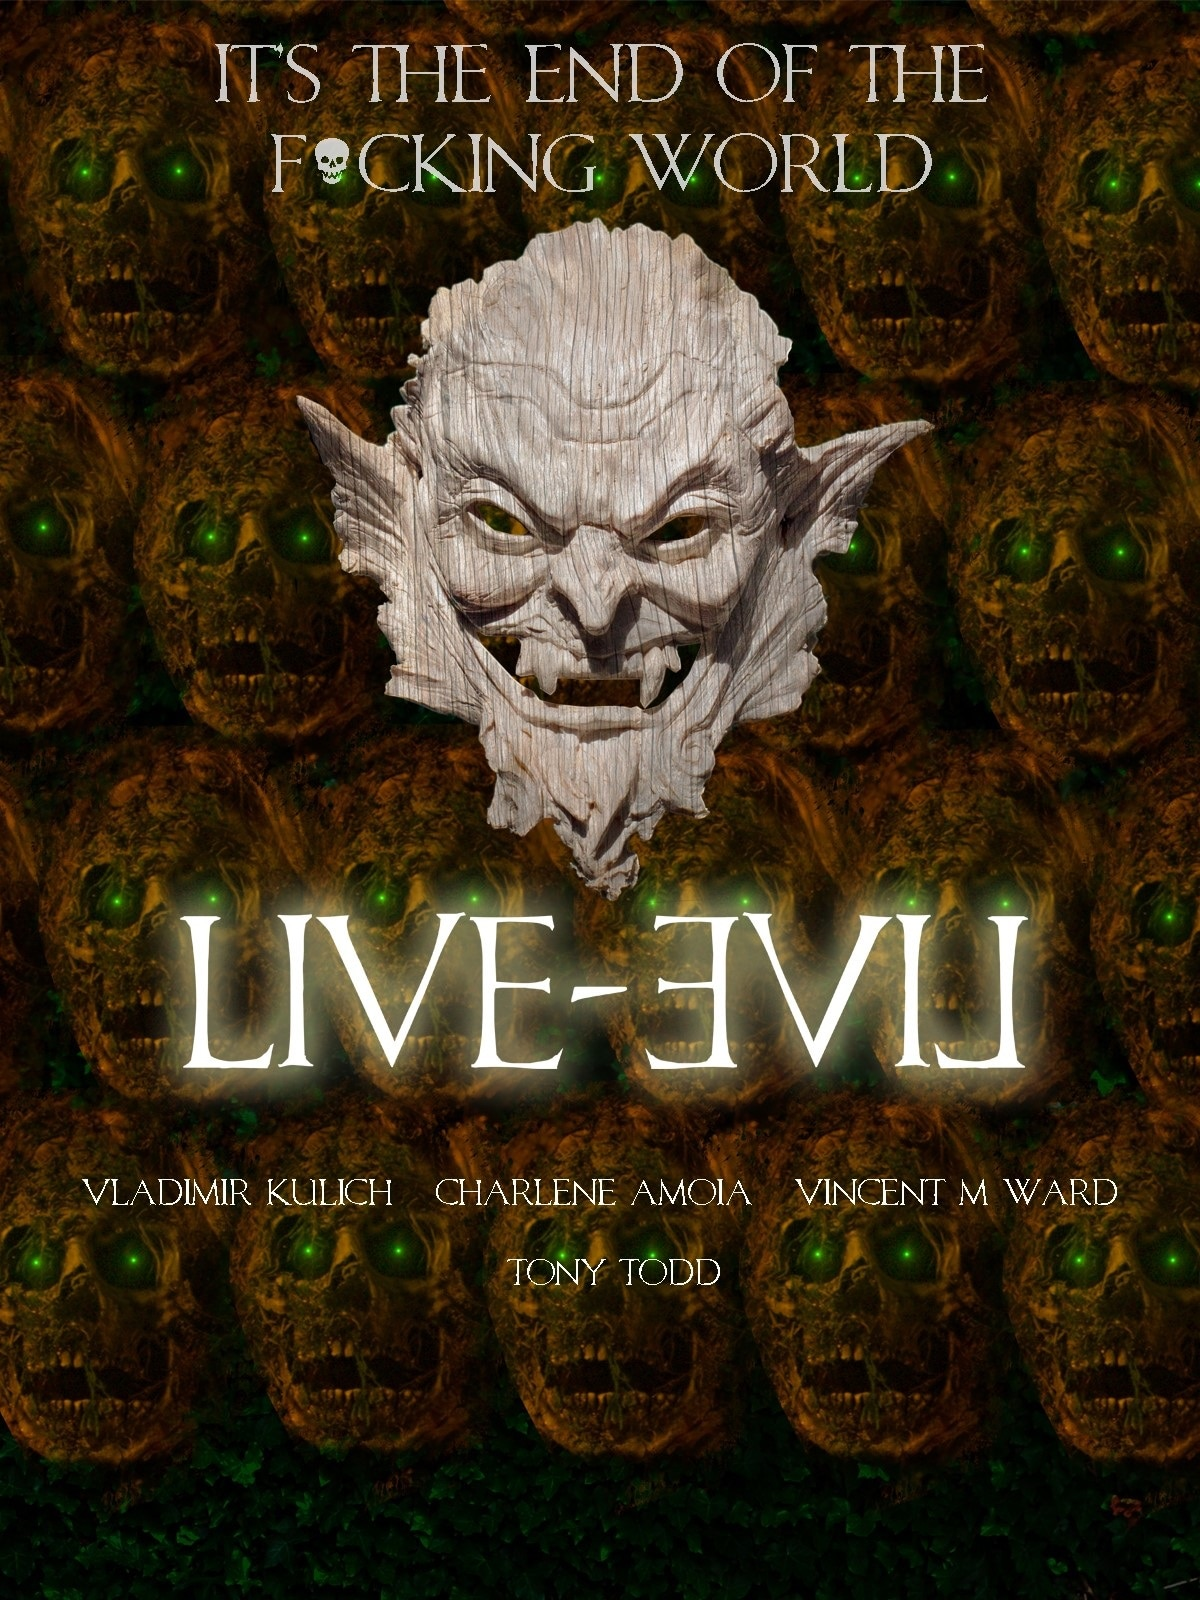 leposter - Live-Evil Clip Debut: There's Something Spooky in the Attic